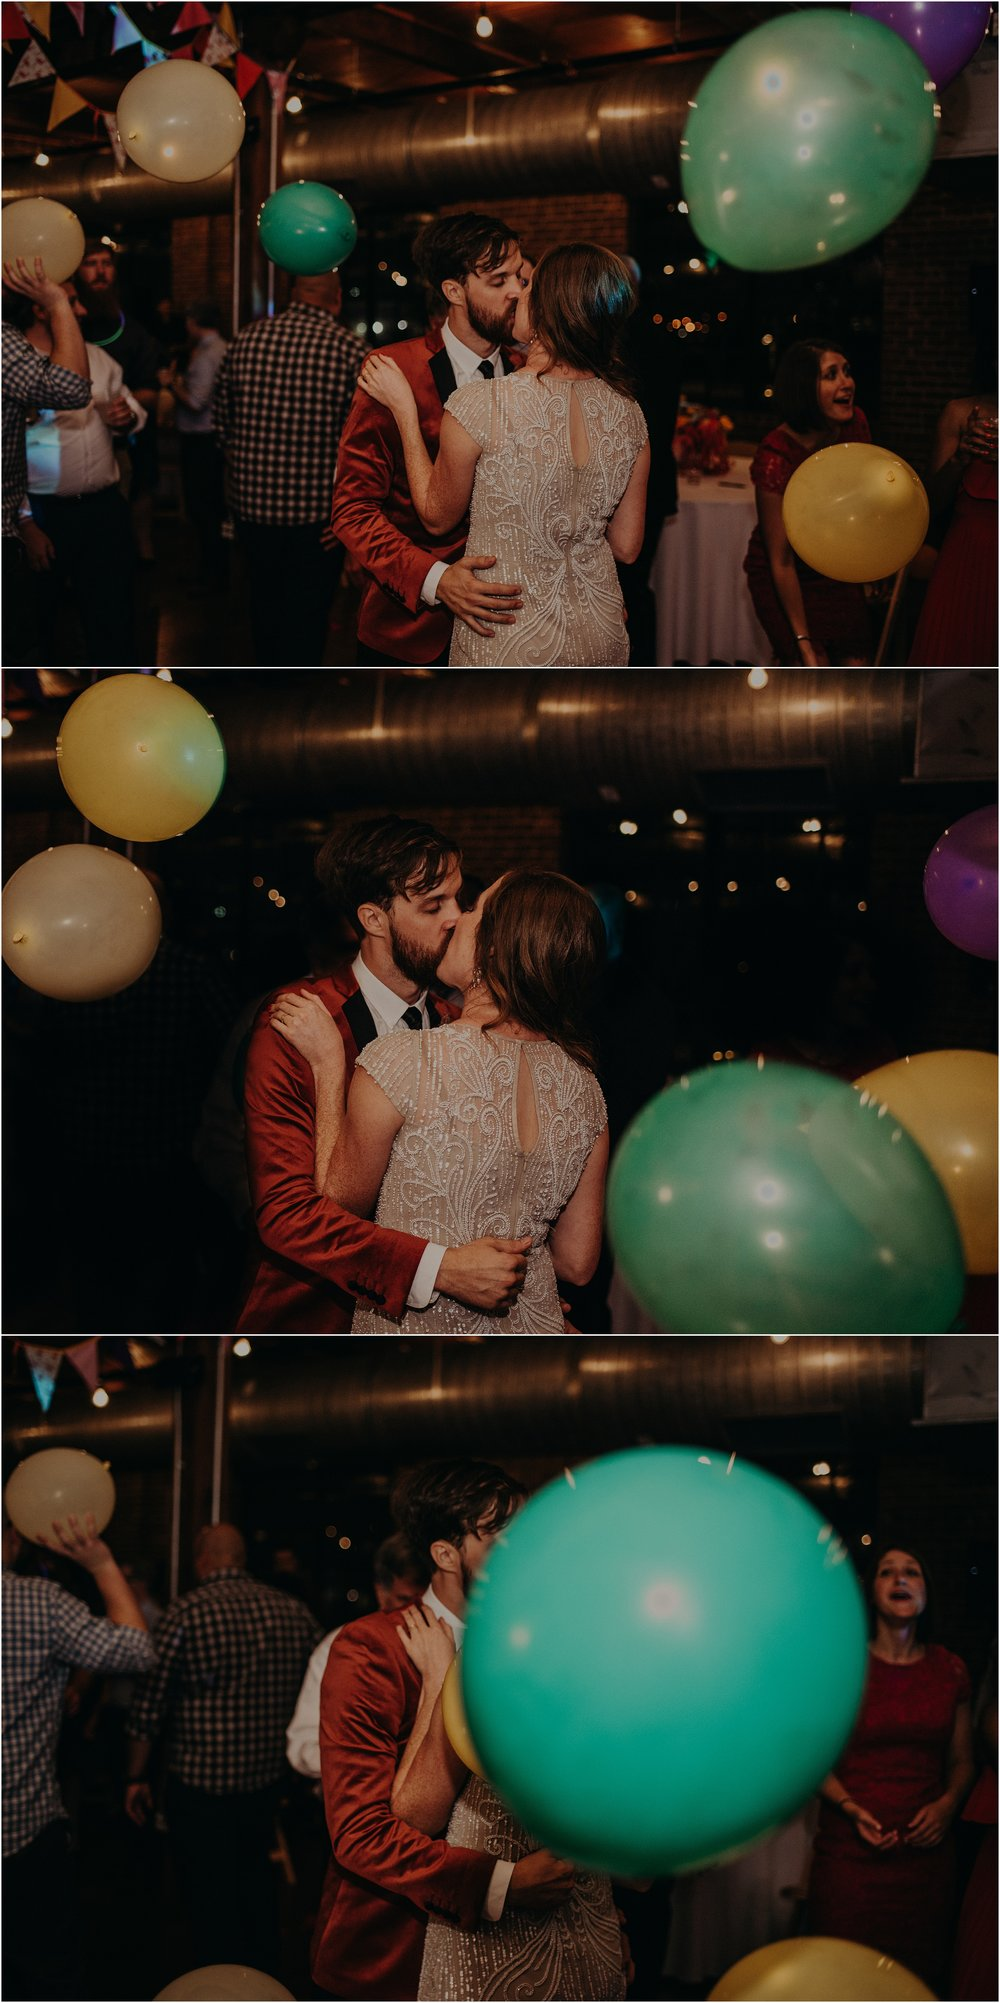 Balloons fall while the newlyweds kiss